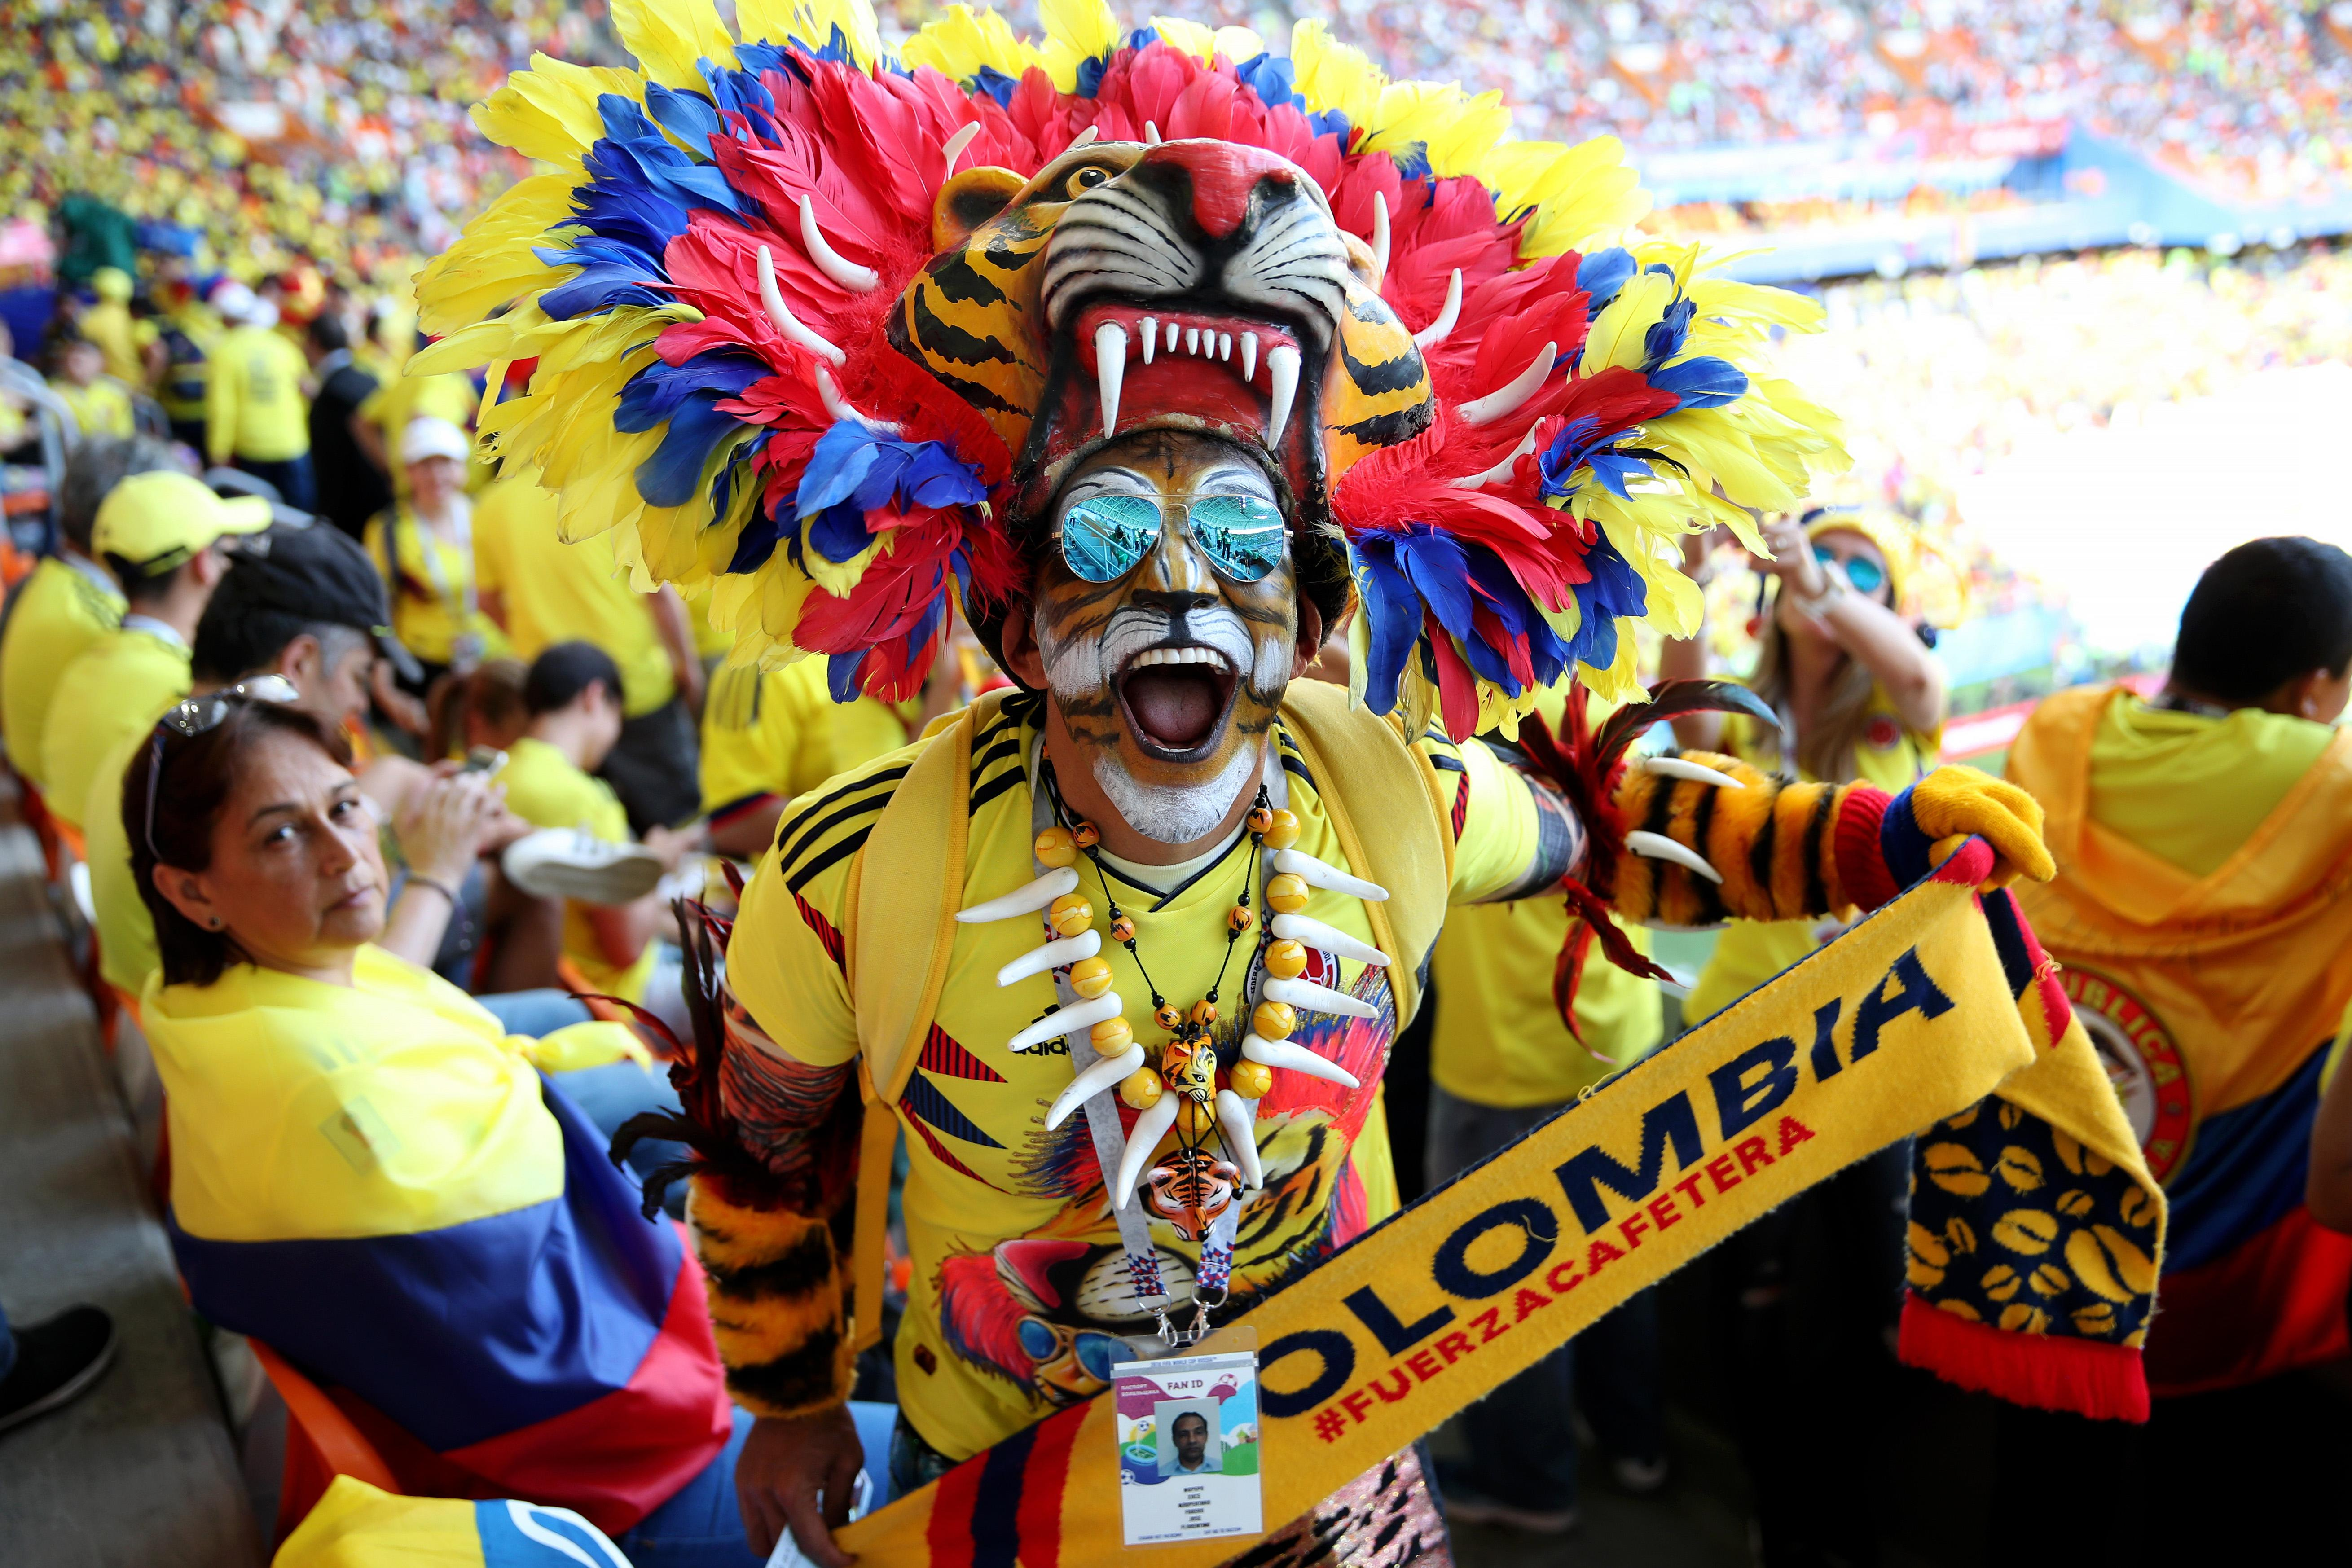 sc 1 st  Yahoo Sports & World Cup Russia 2018 best fans in pictures